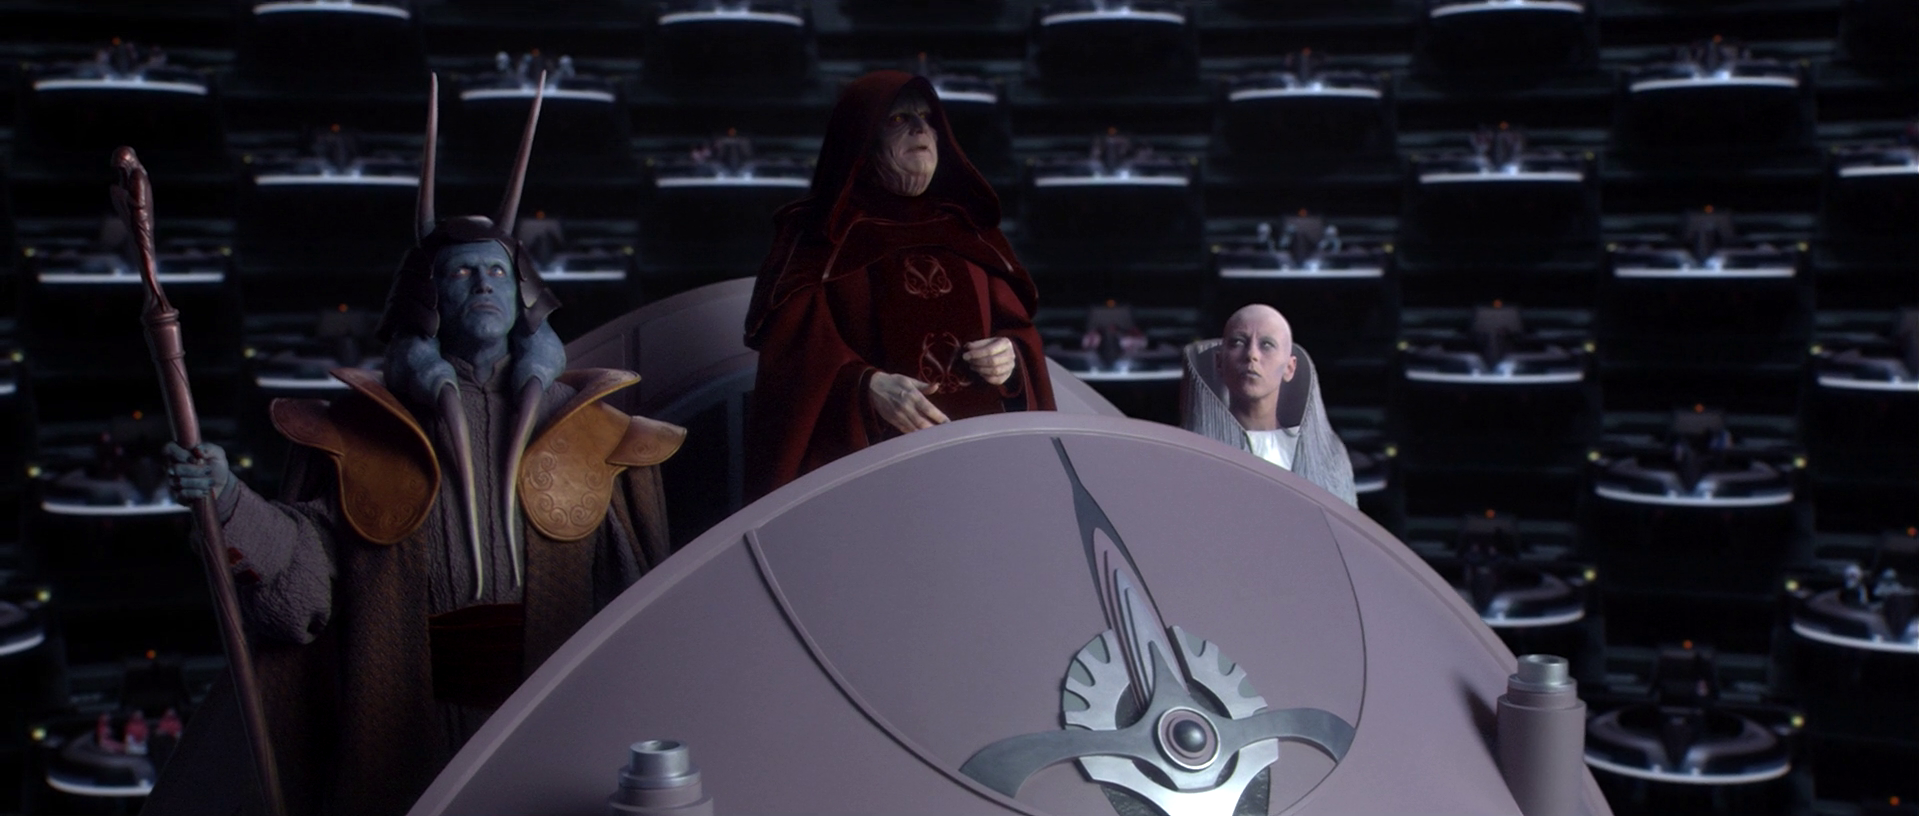 The first Galactic Emperor addresses the Senate from his podium during the Declaration of a New Order. ( Star Wars Wiki )